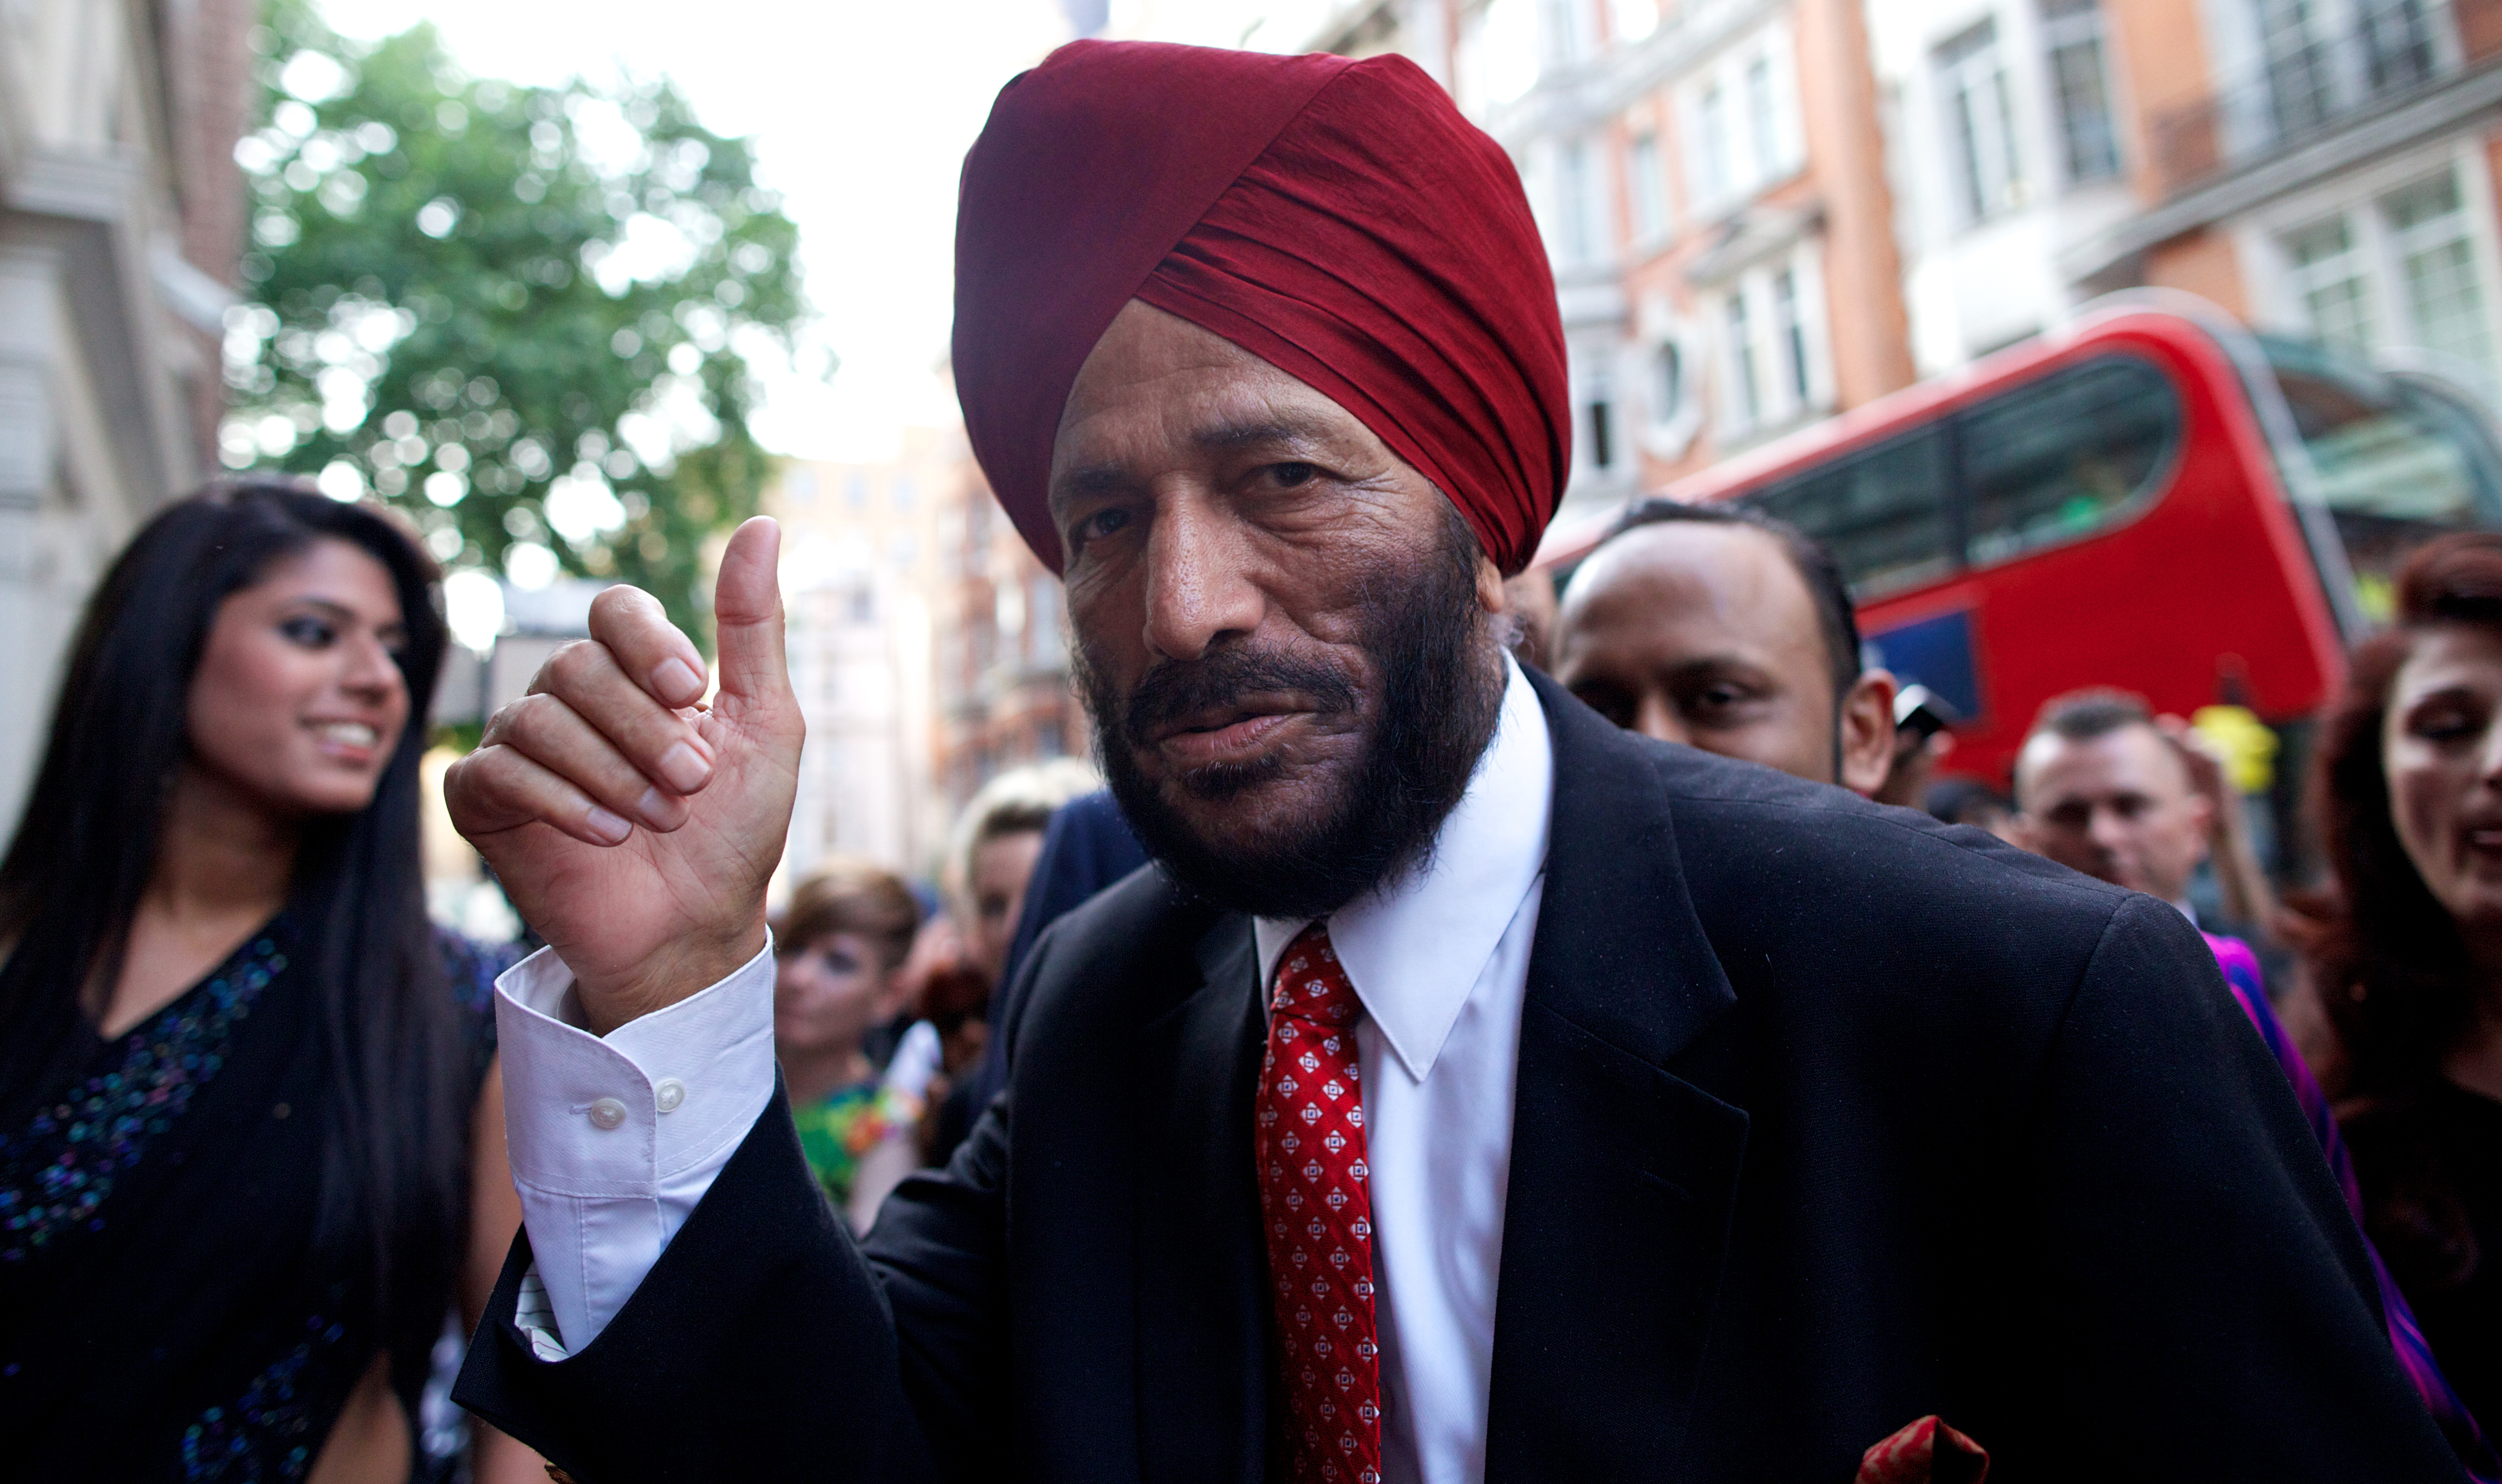 Milkha Singh. Image Credit: ANDREW COWIE / AFP